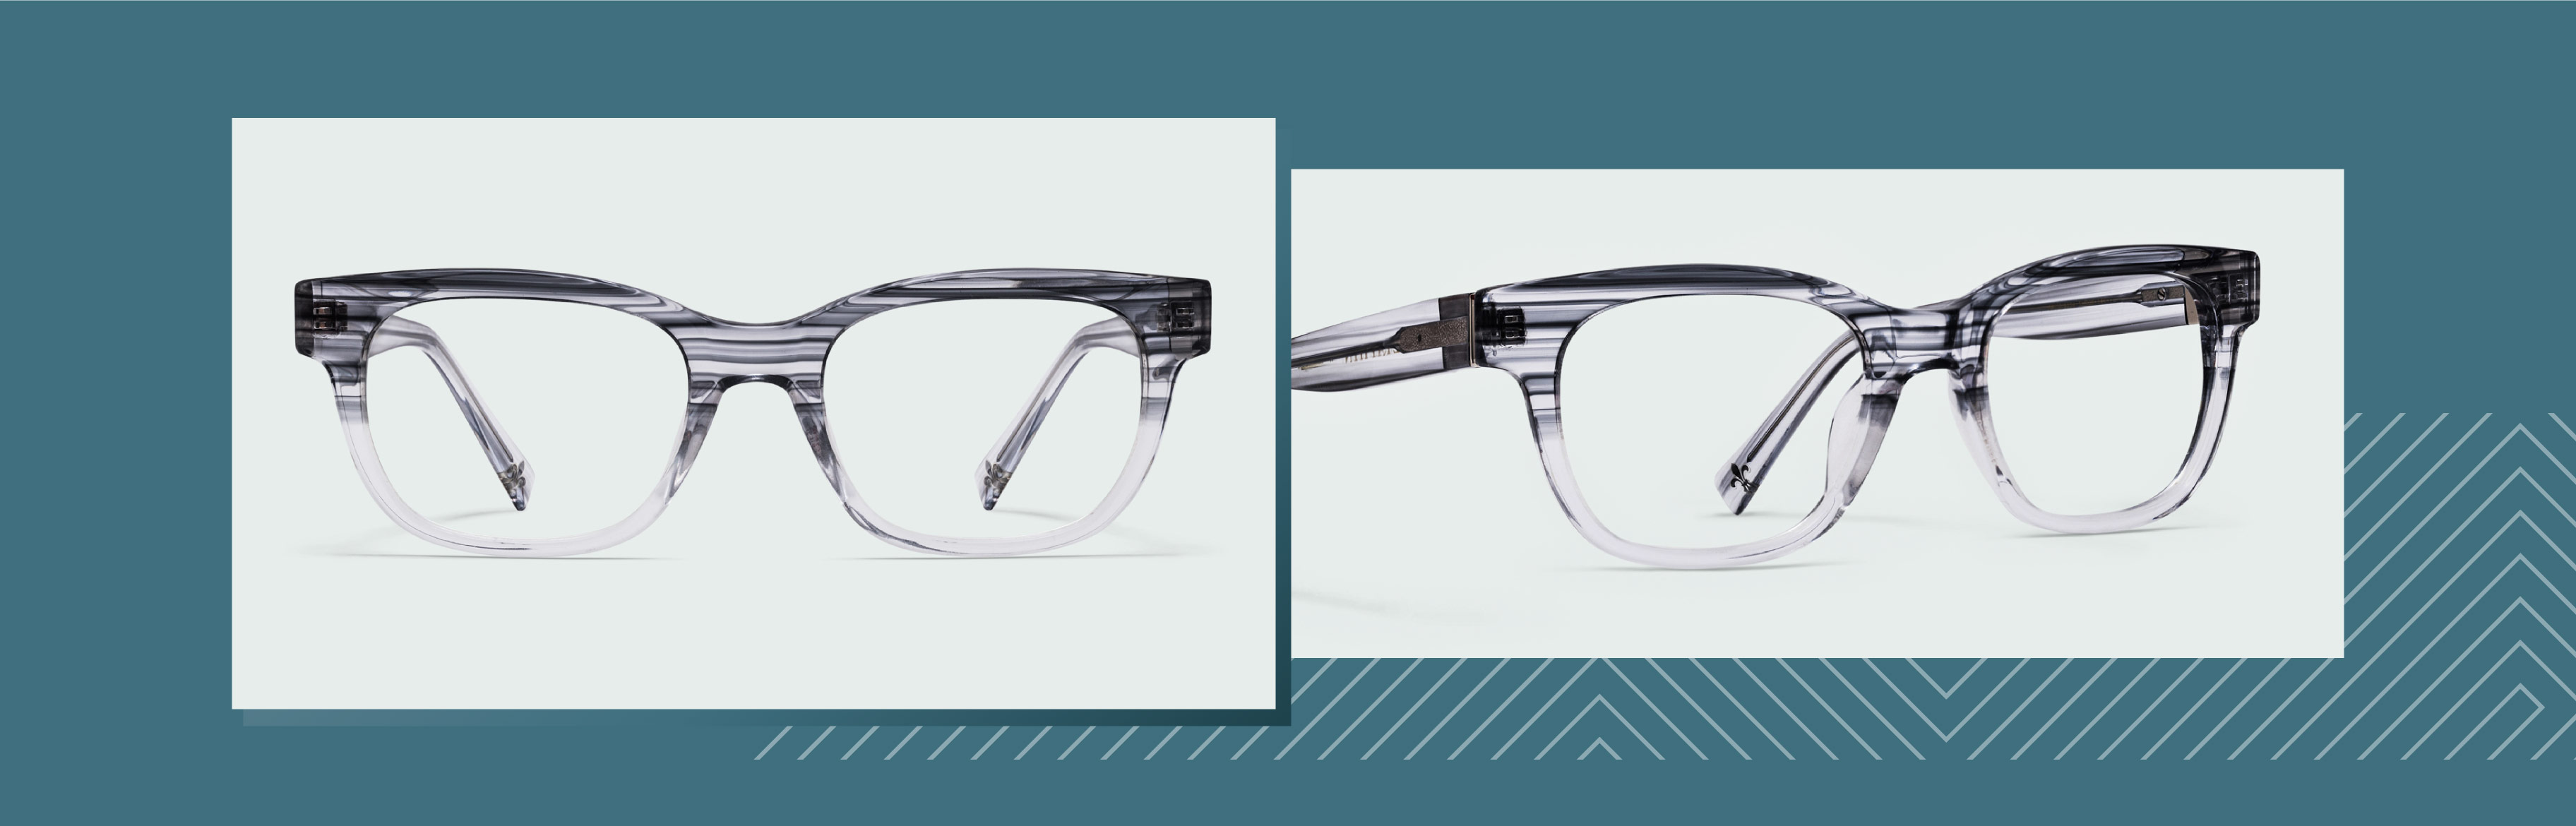 Transparent glasses with a stripe pattern that matches in all circumstances